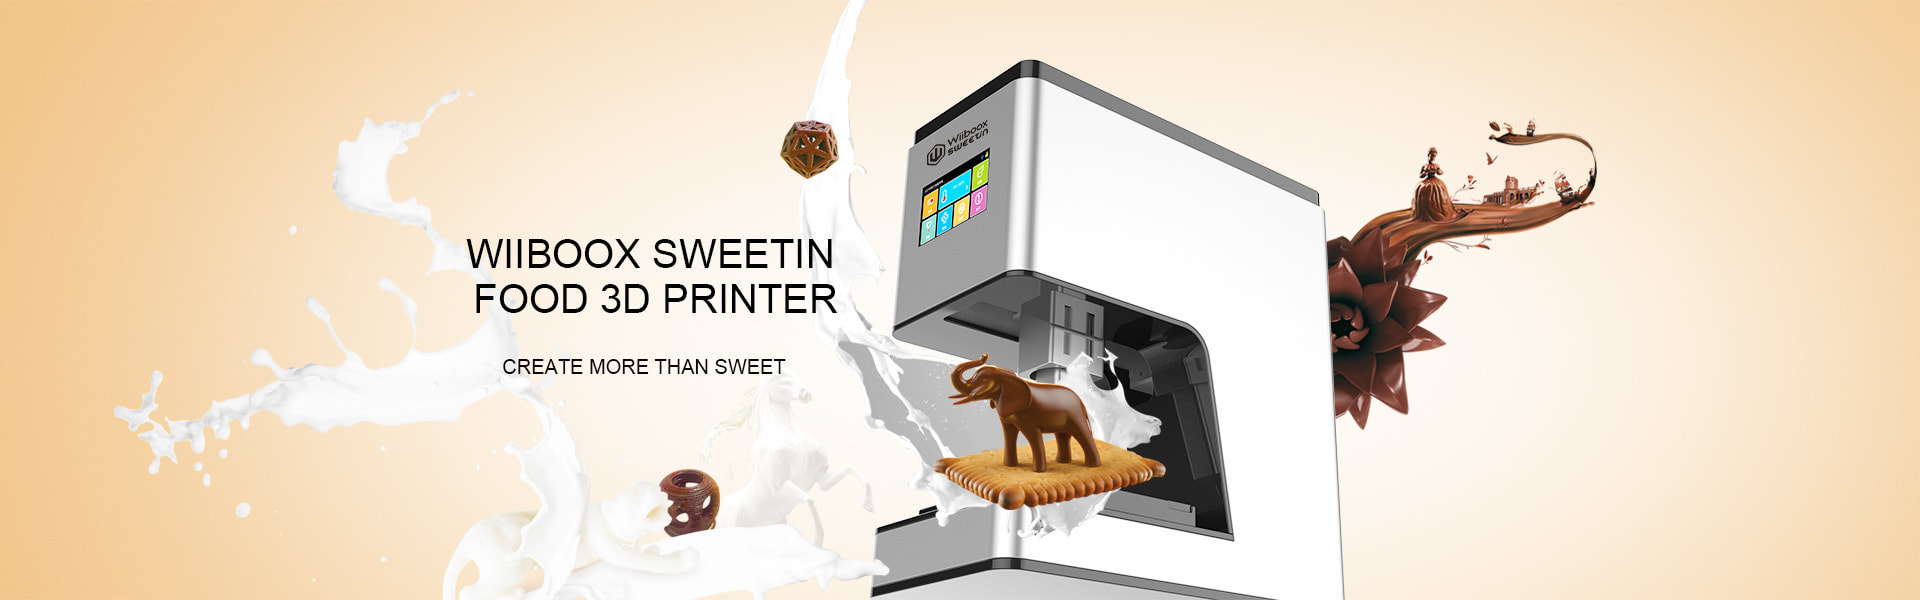 sweetin food 3d printer